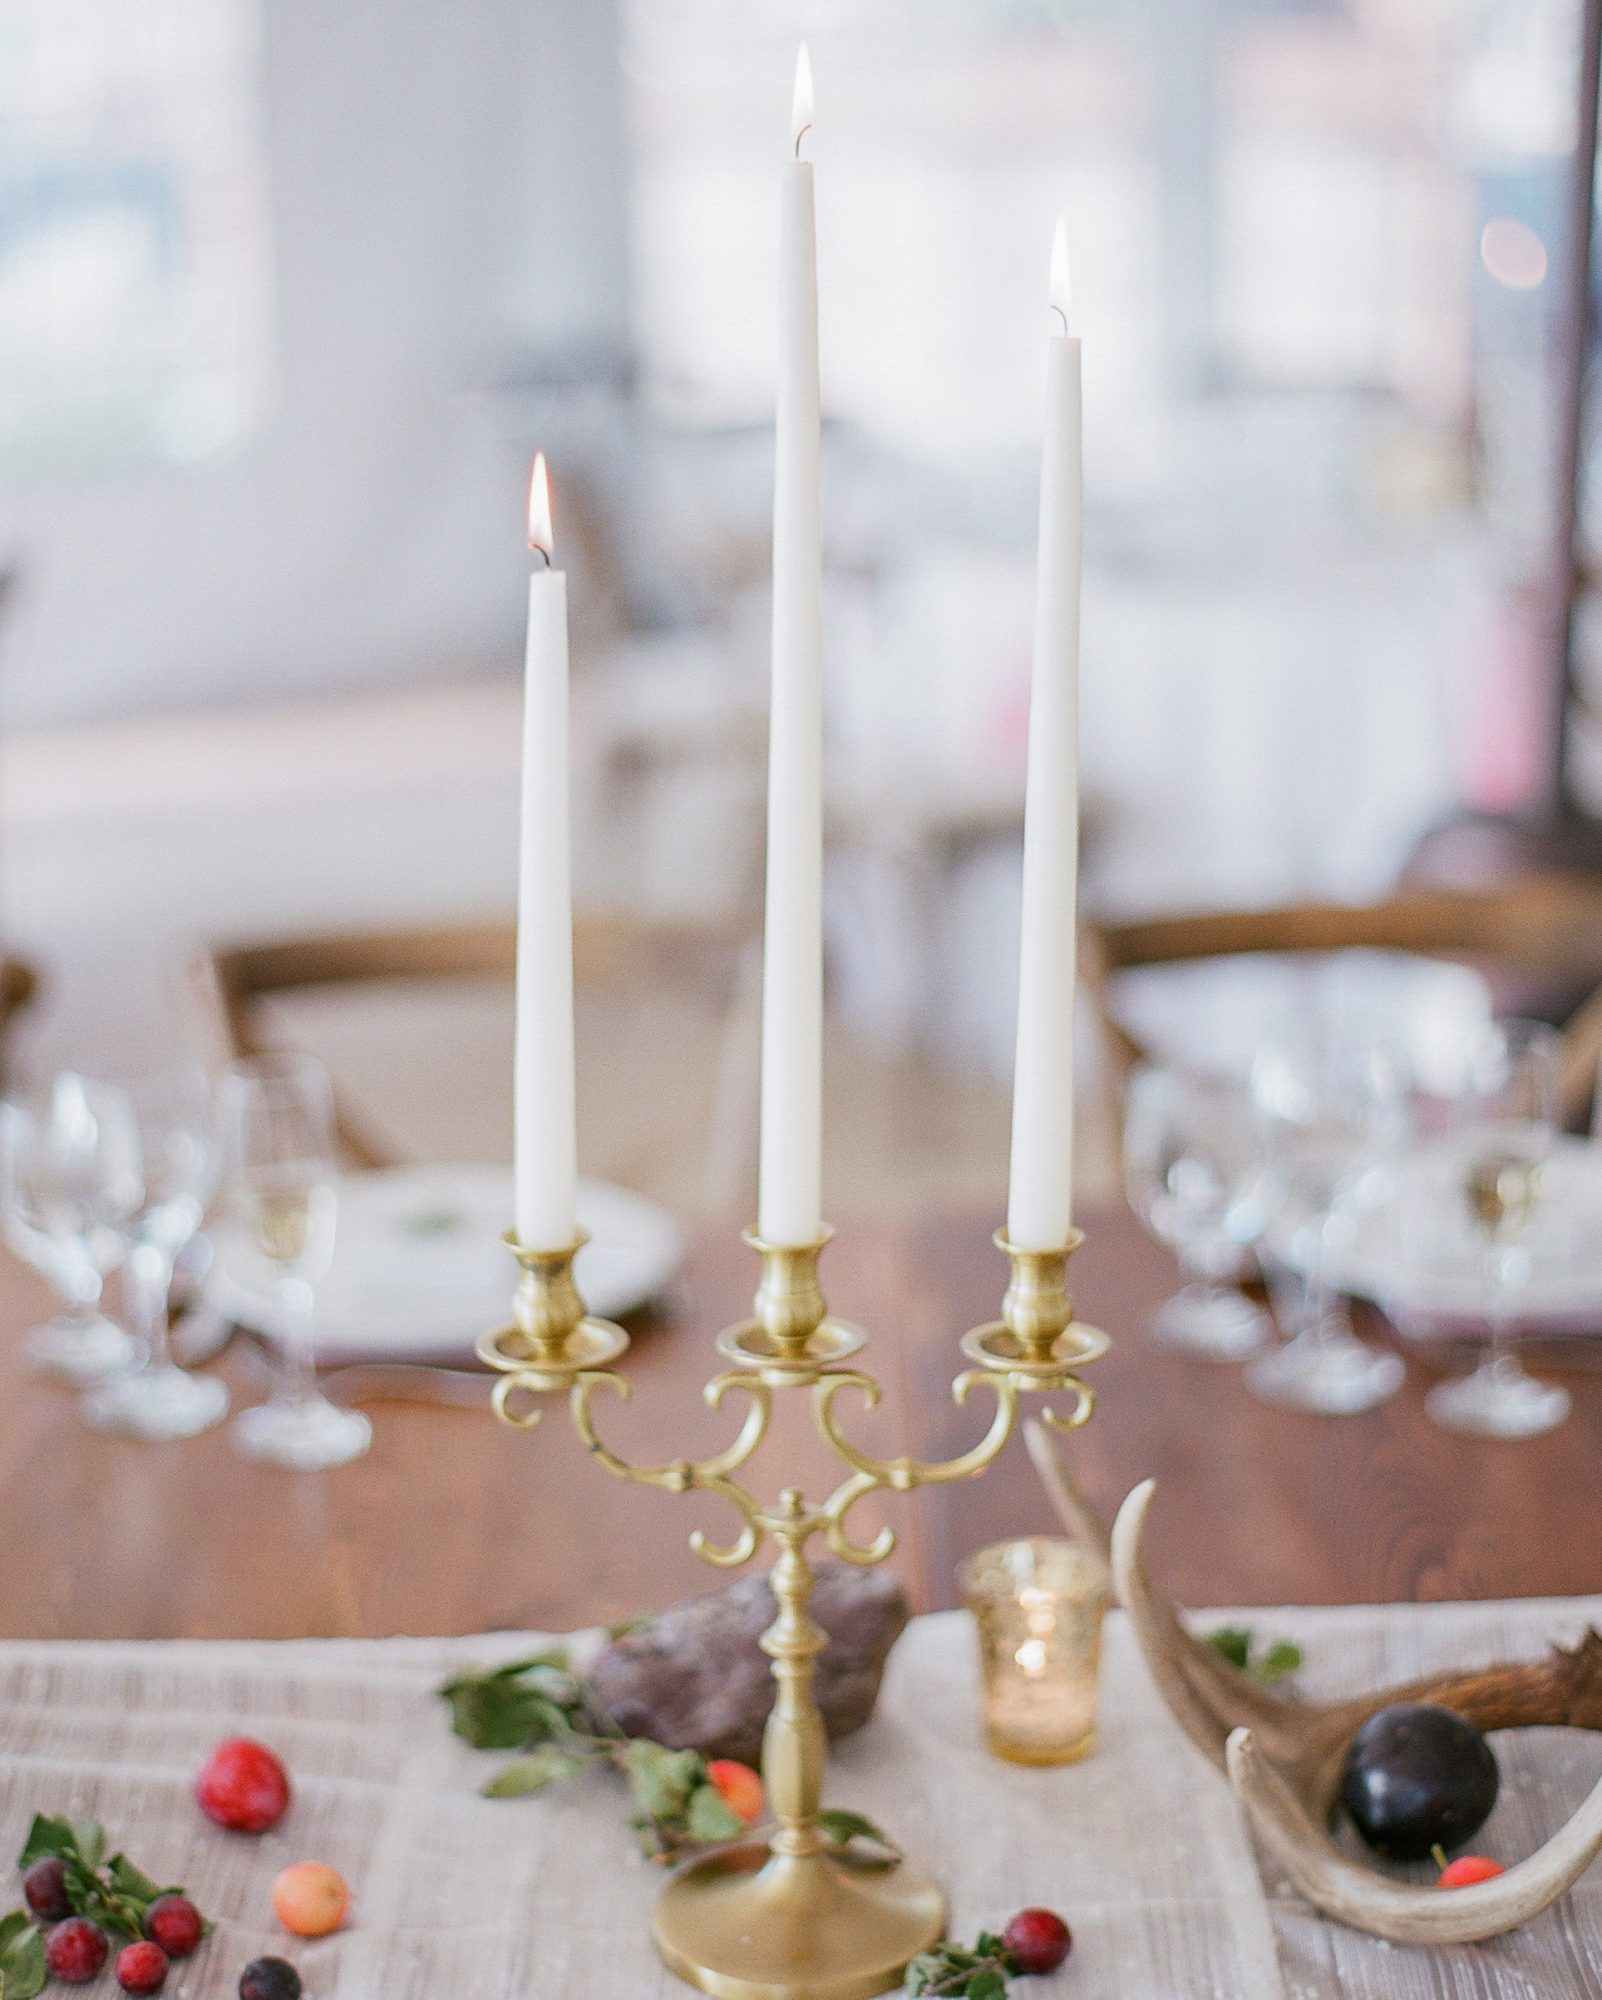 robin-kenny-wedding-candlesticks-021-s112068-0715.jpg